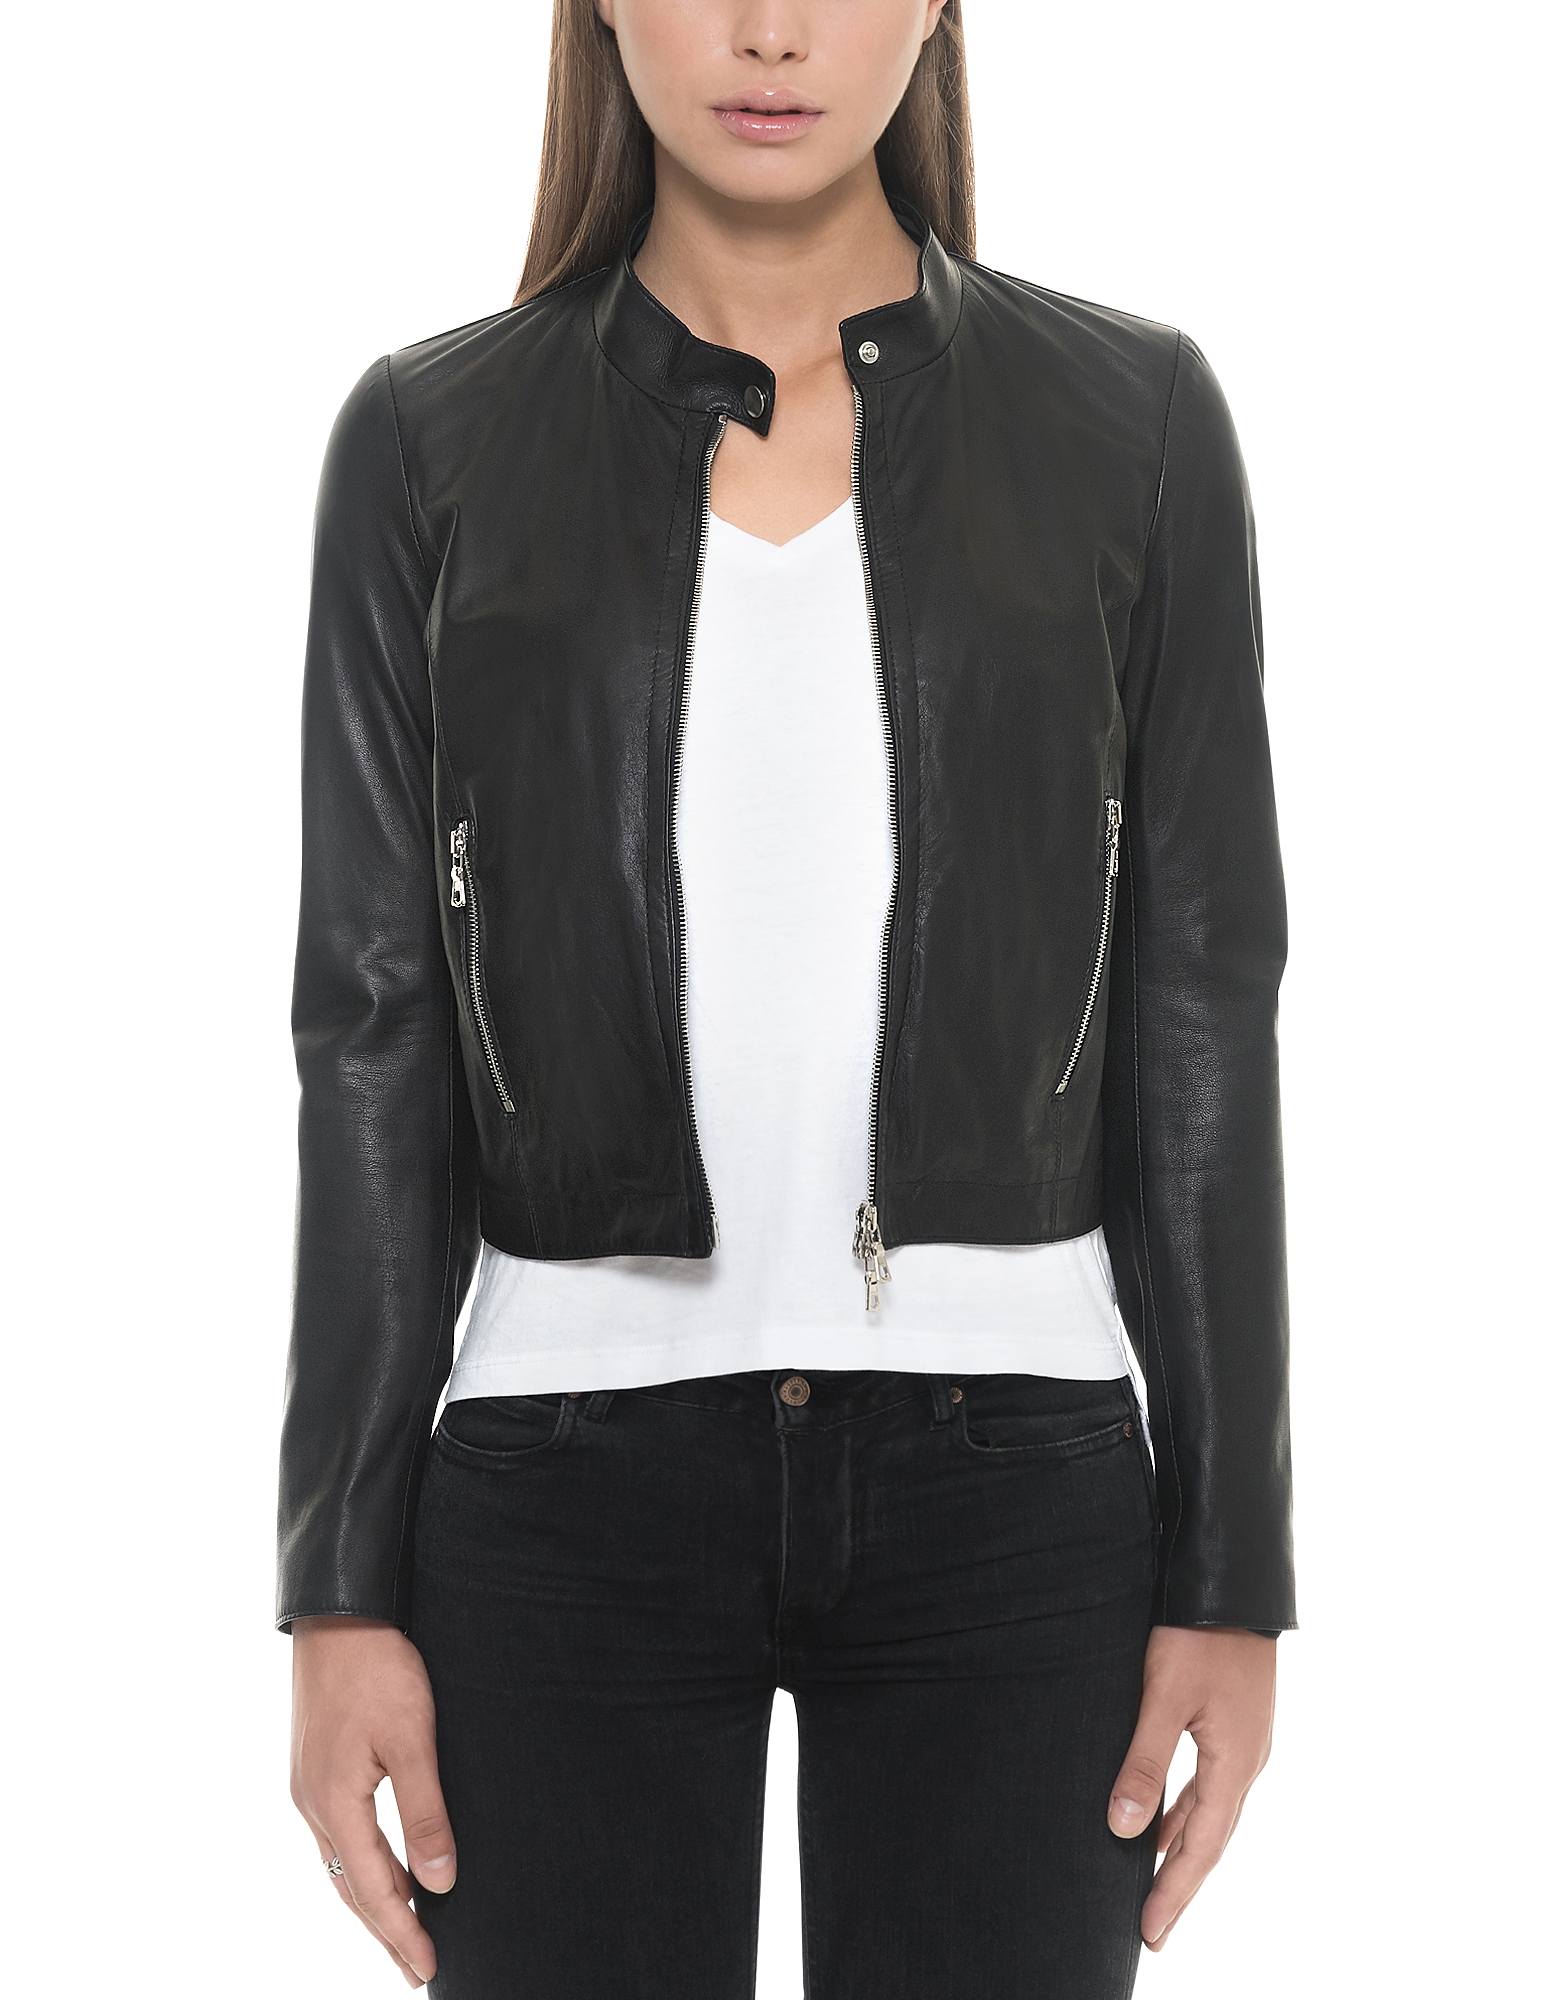 Forzieri Leather Jackets, Black Leather Women's Jacket